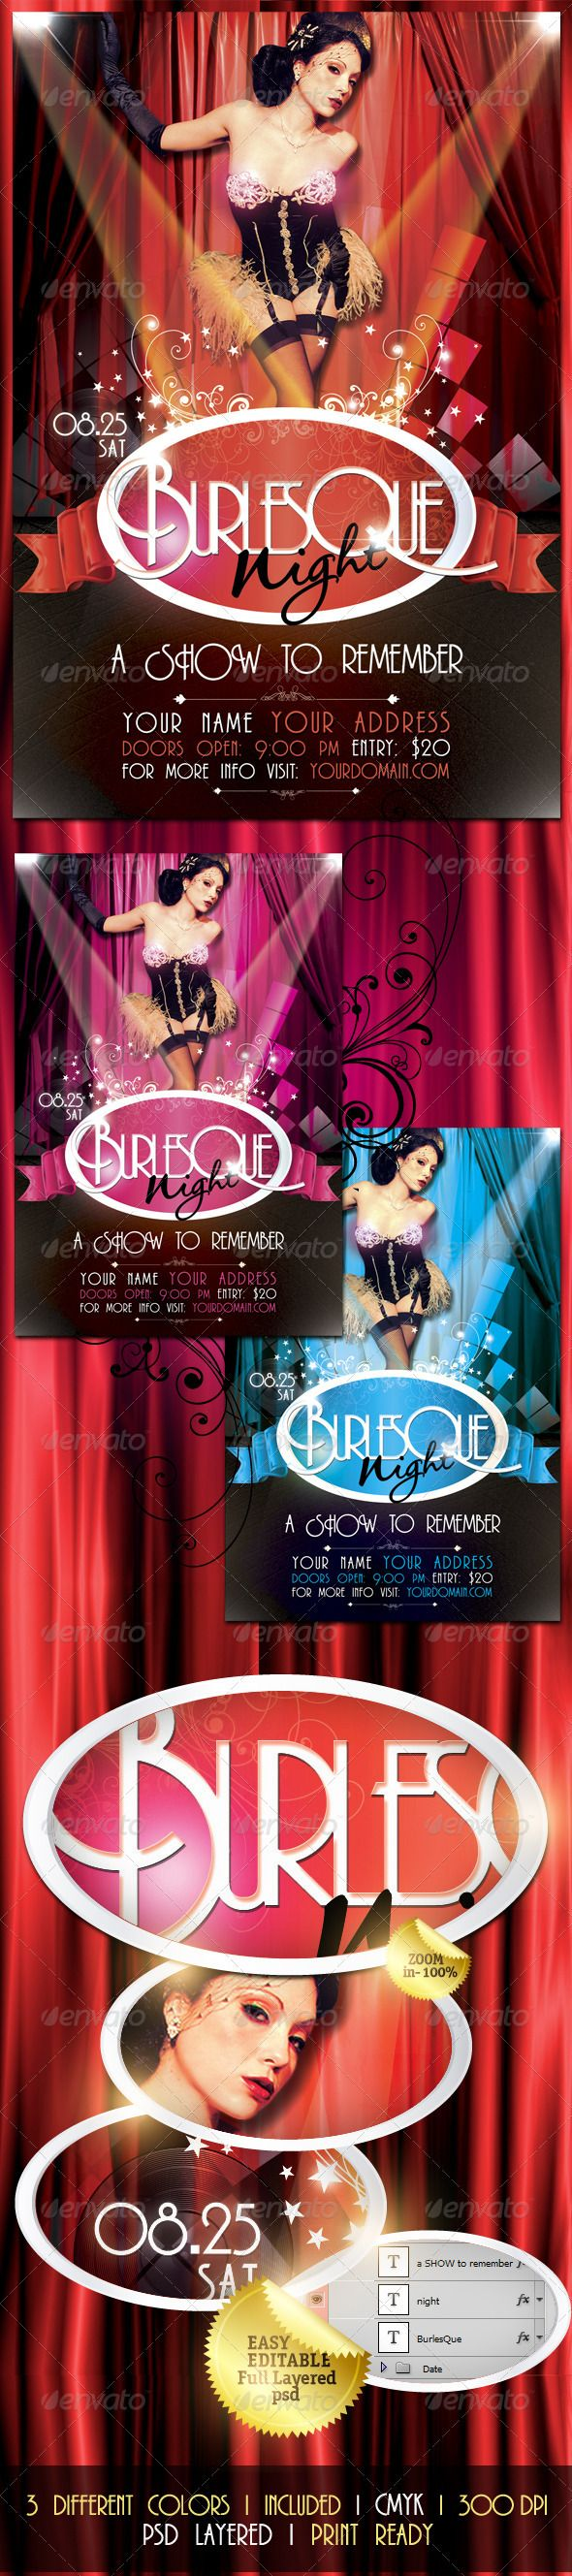 Burlesque Night Flyer Template / $6. *** This flyer/poster is perfect for promoting any type of event such as cabarets, theaters, showtime, burlesque spectacles or whatever you want!. ***